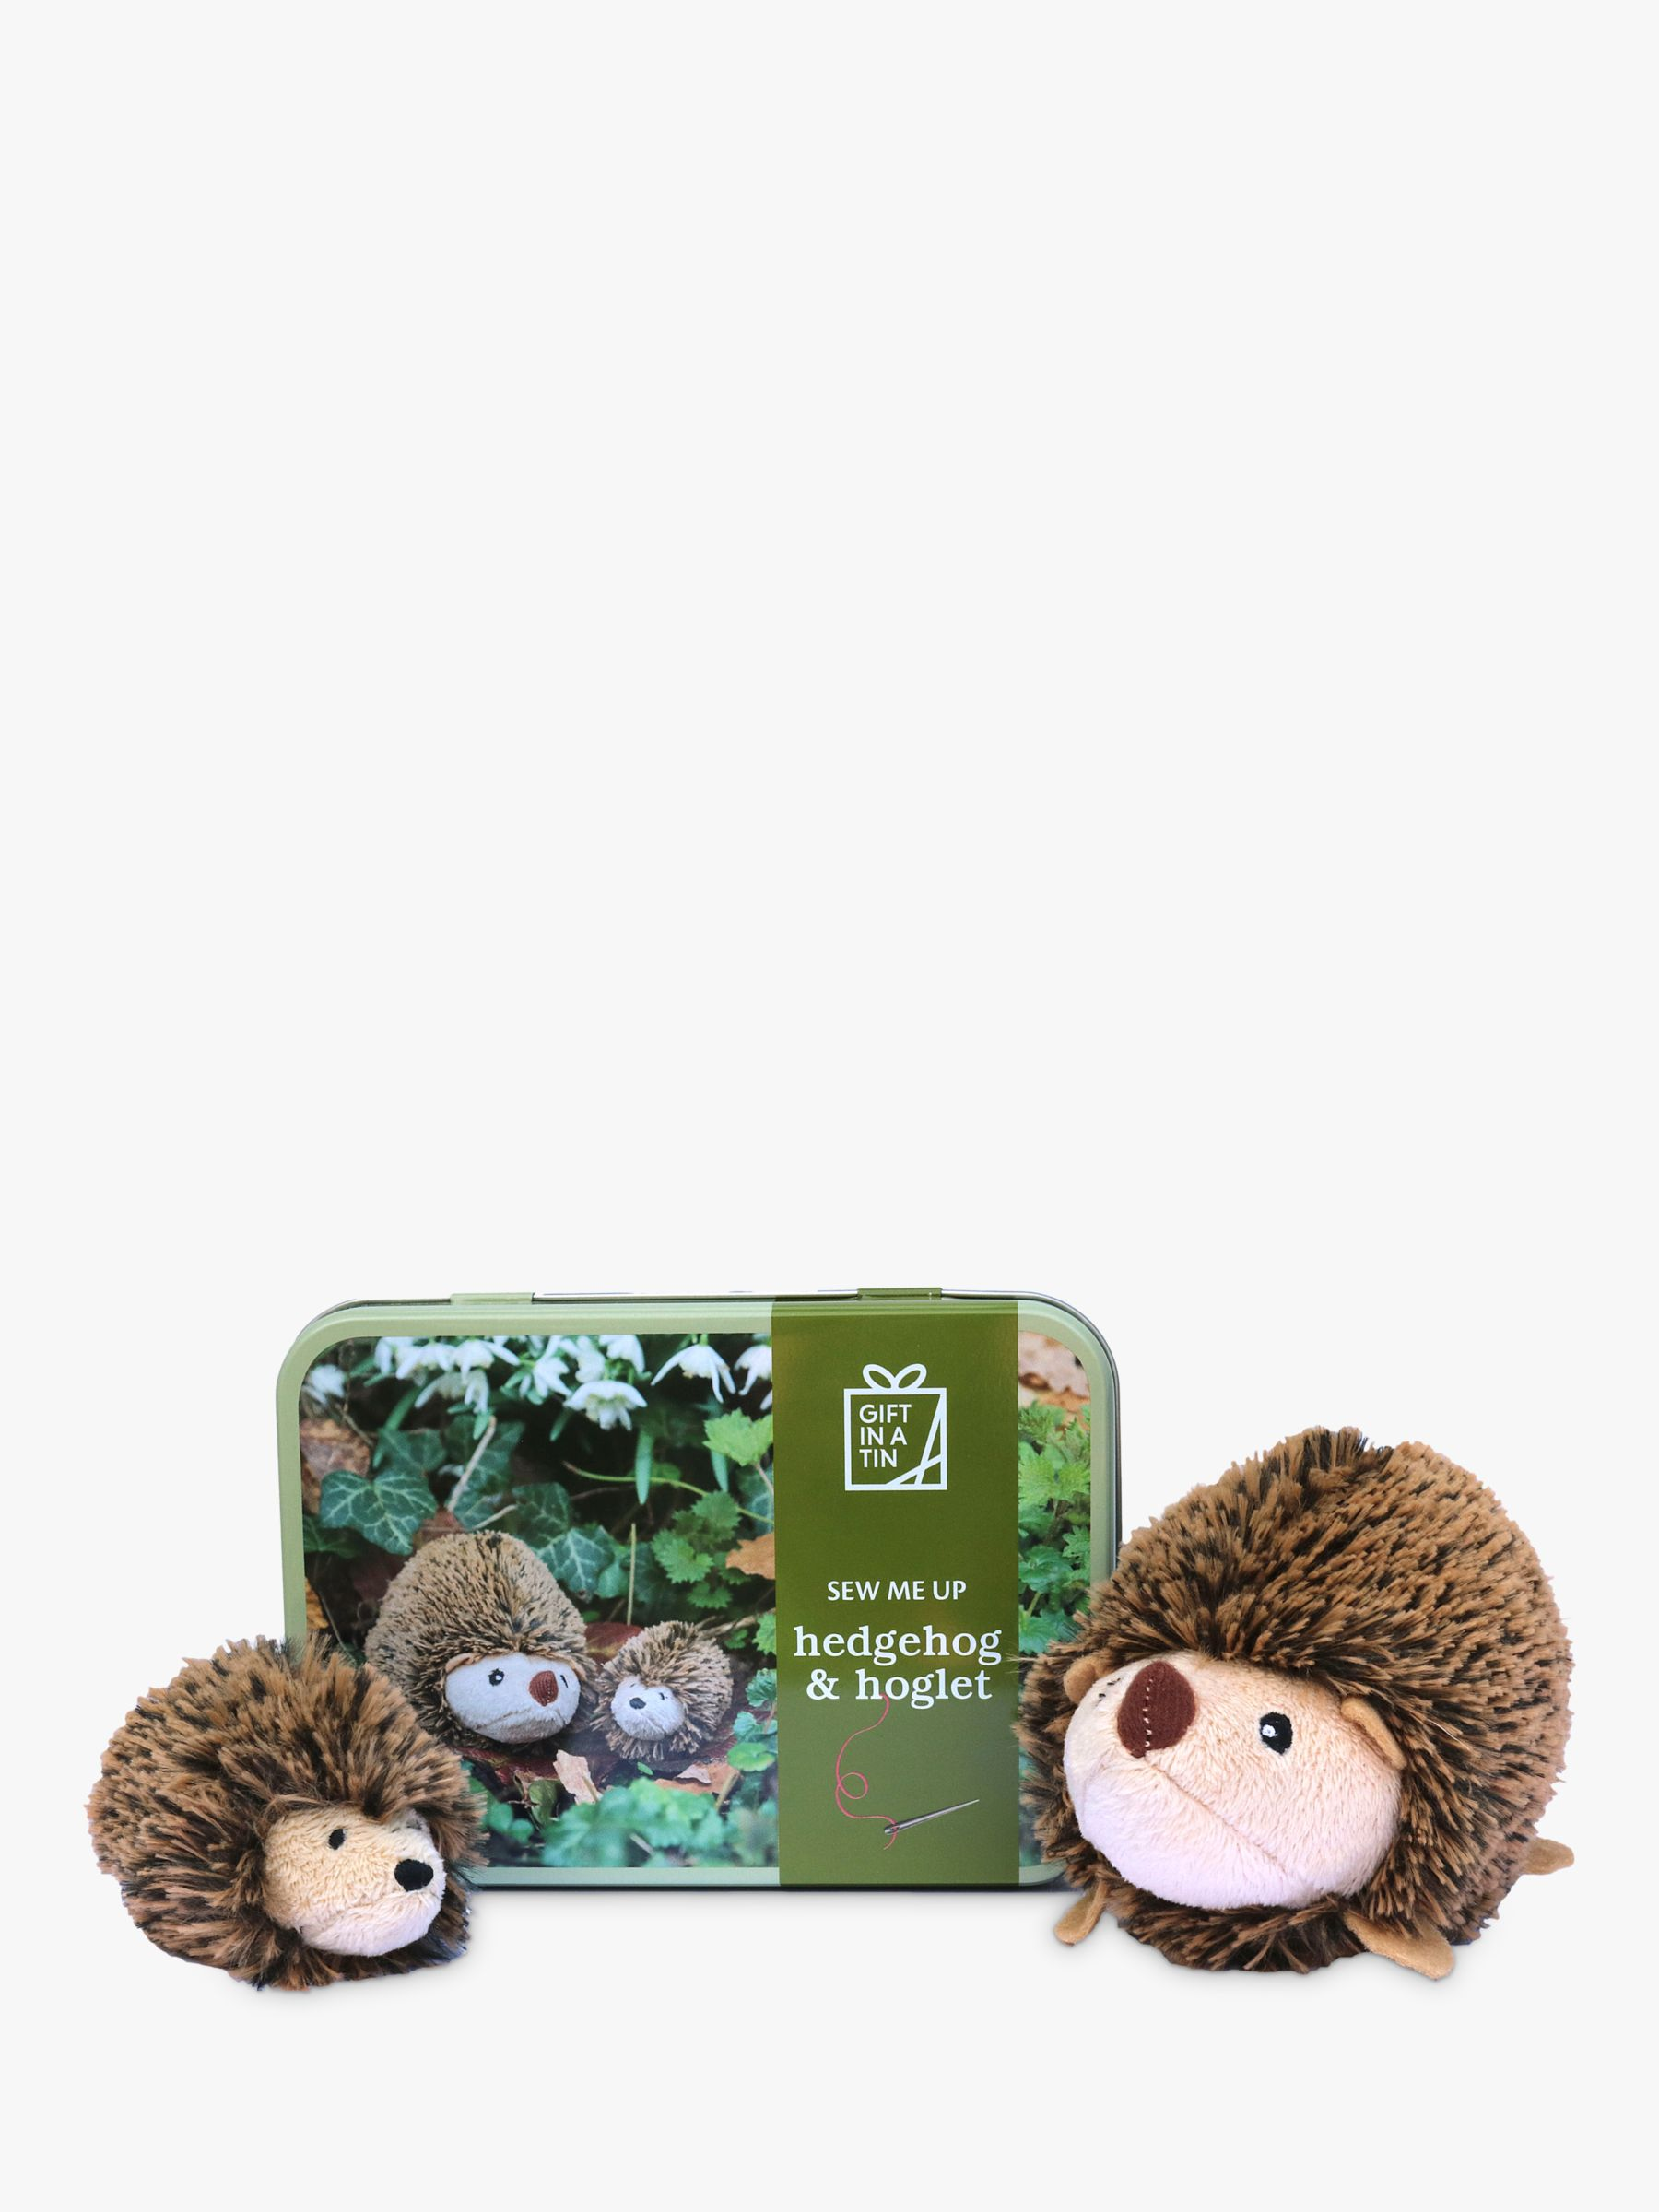 Apples To Pears Apples To Pears Sew Me Up Hedgehog and Hoglet Sewing Kit, Brown